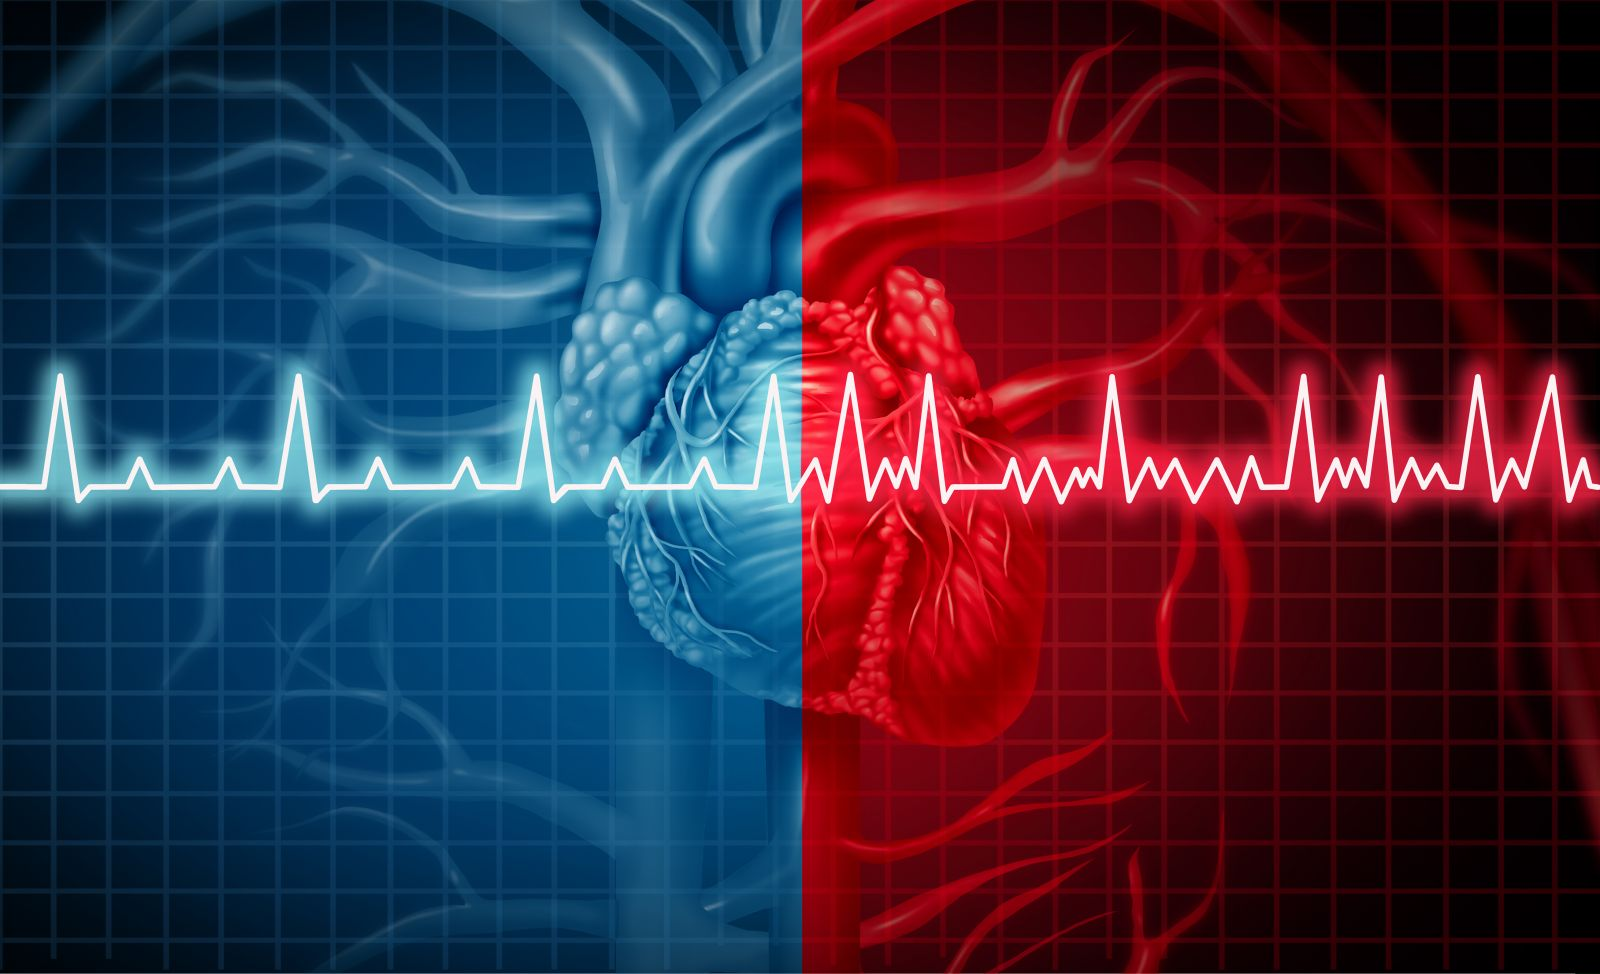 Atrial fibrillation: Common, serious, treatable - Harvard Health